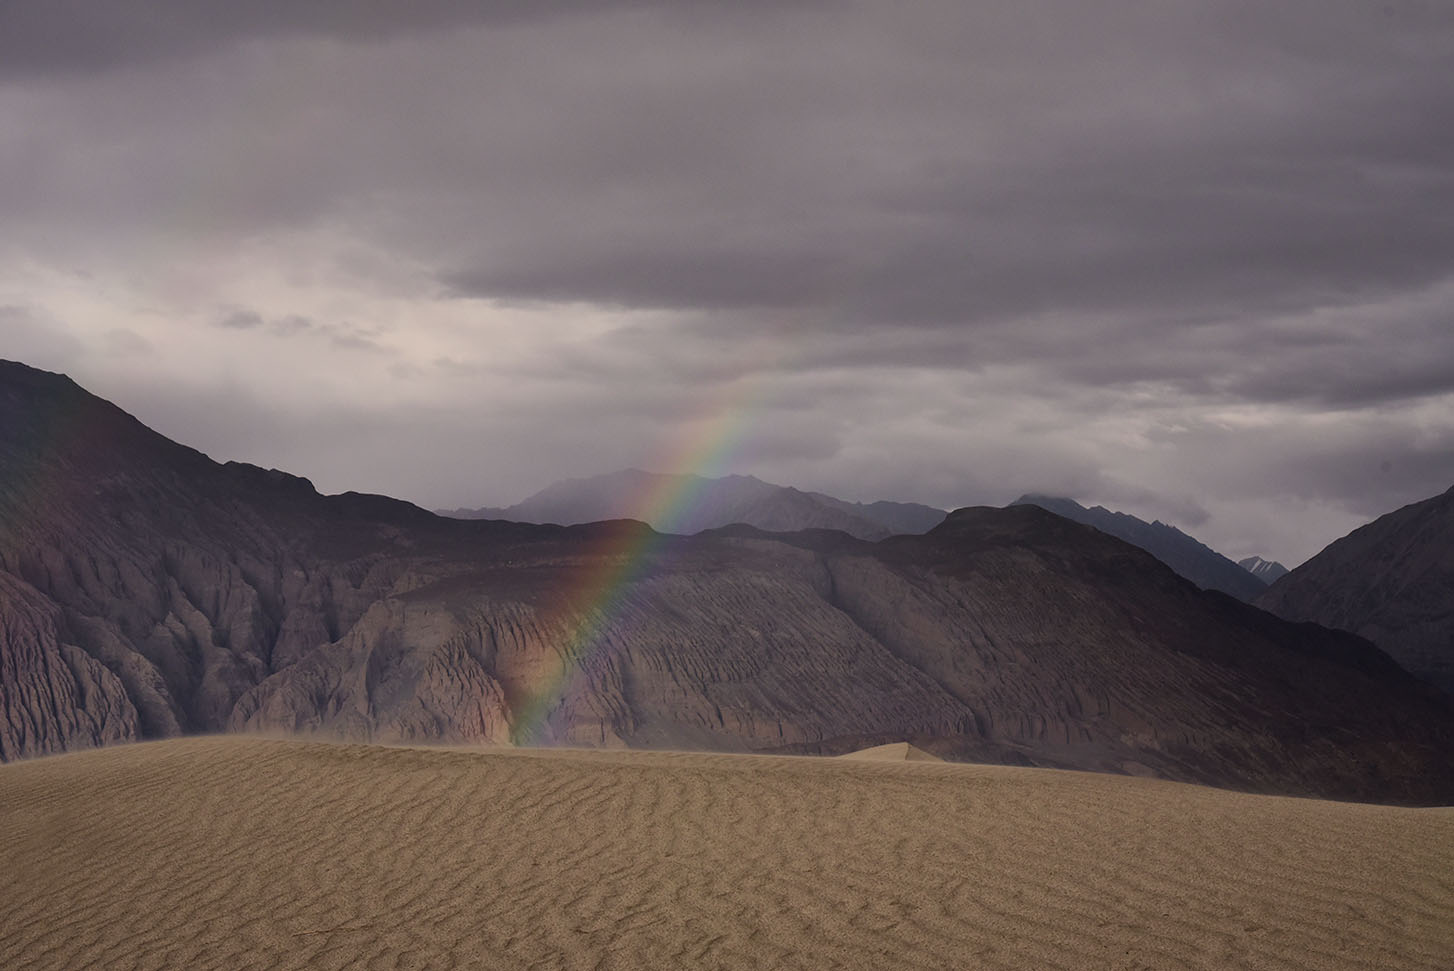 Rainbow in the high altitude desert of Nubra Valley, Ladakh